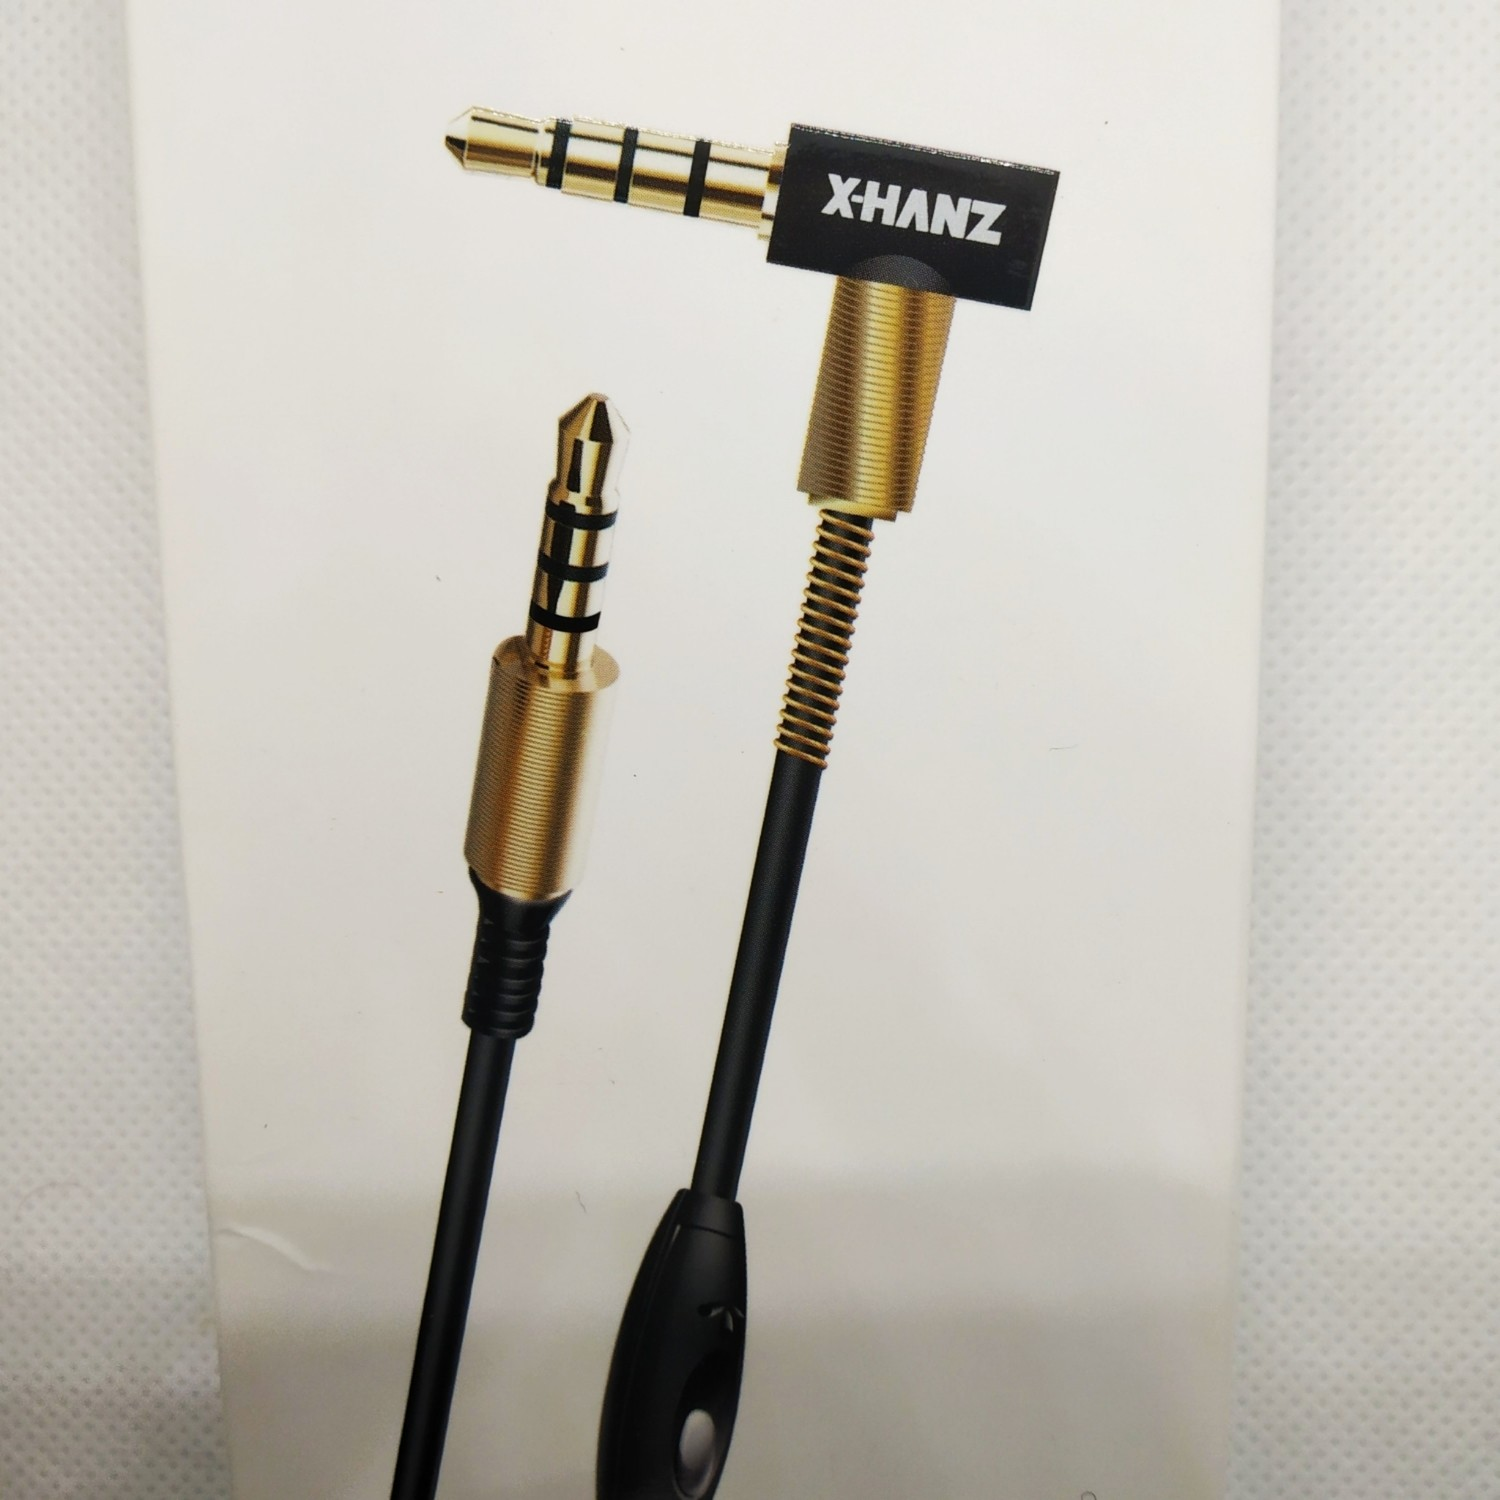 X-HANZ 3.5 AUX Audio Cable with mic for talk for mobile phone (1.2m length)